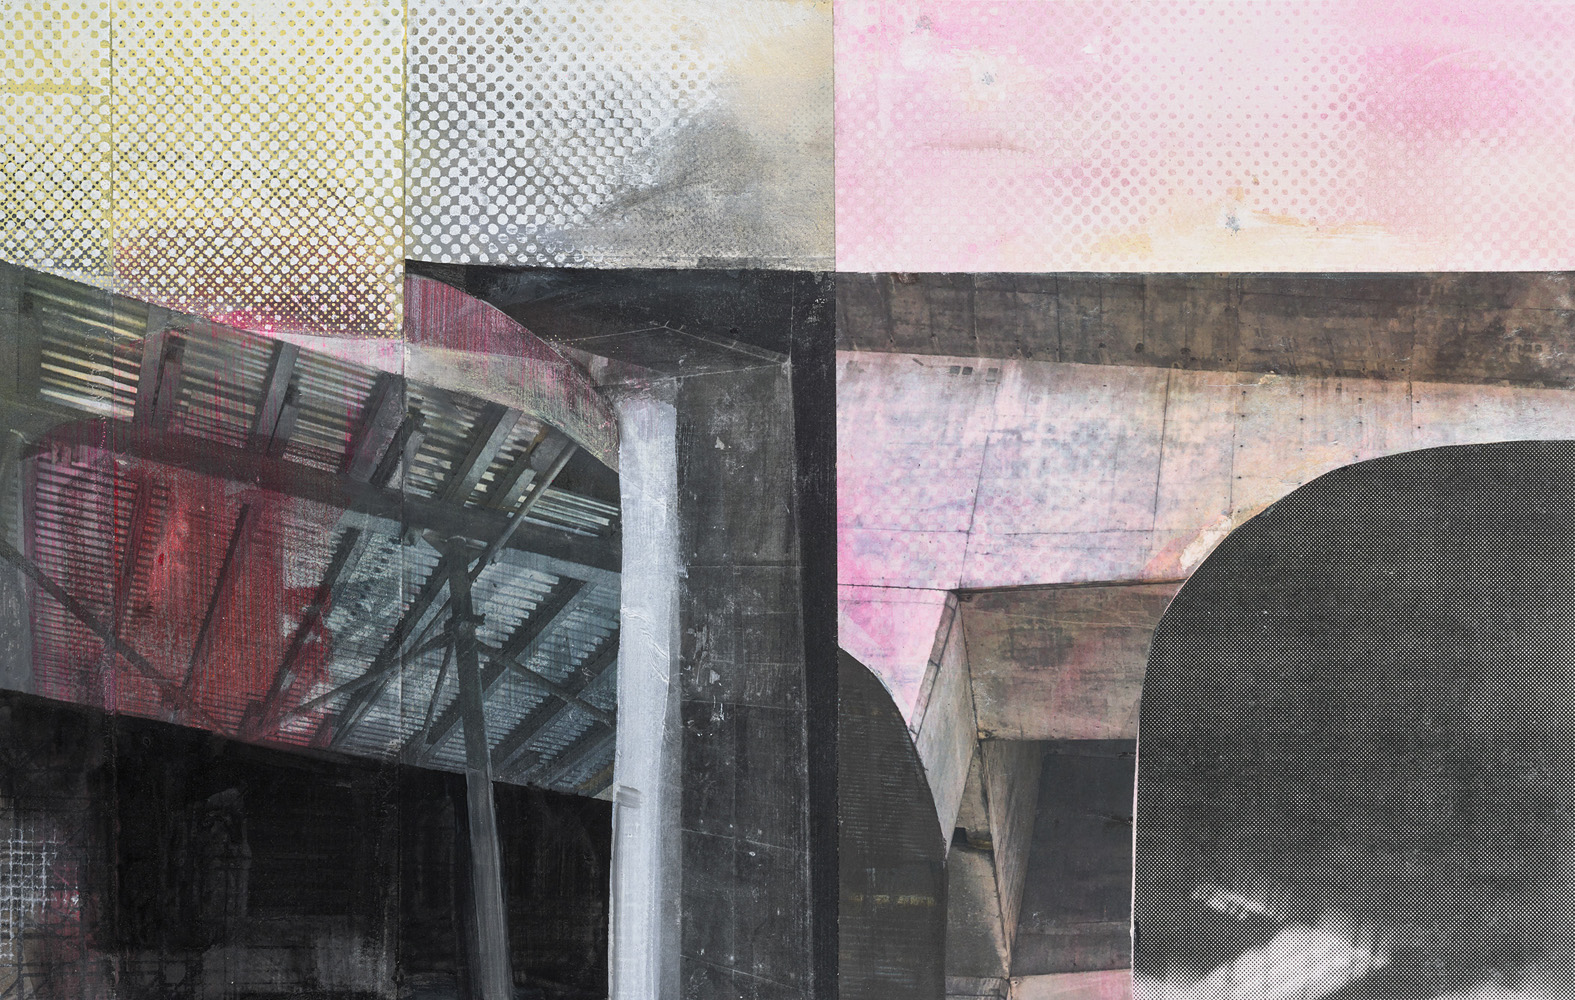 Amanda Knowles, Untitled (Overhead), 2021, screenprint, acrylic, and graphite on paper, 14.5 x 22.5 inches, $1200.